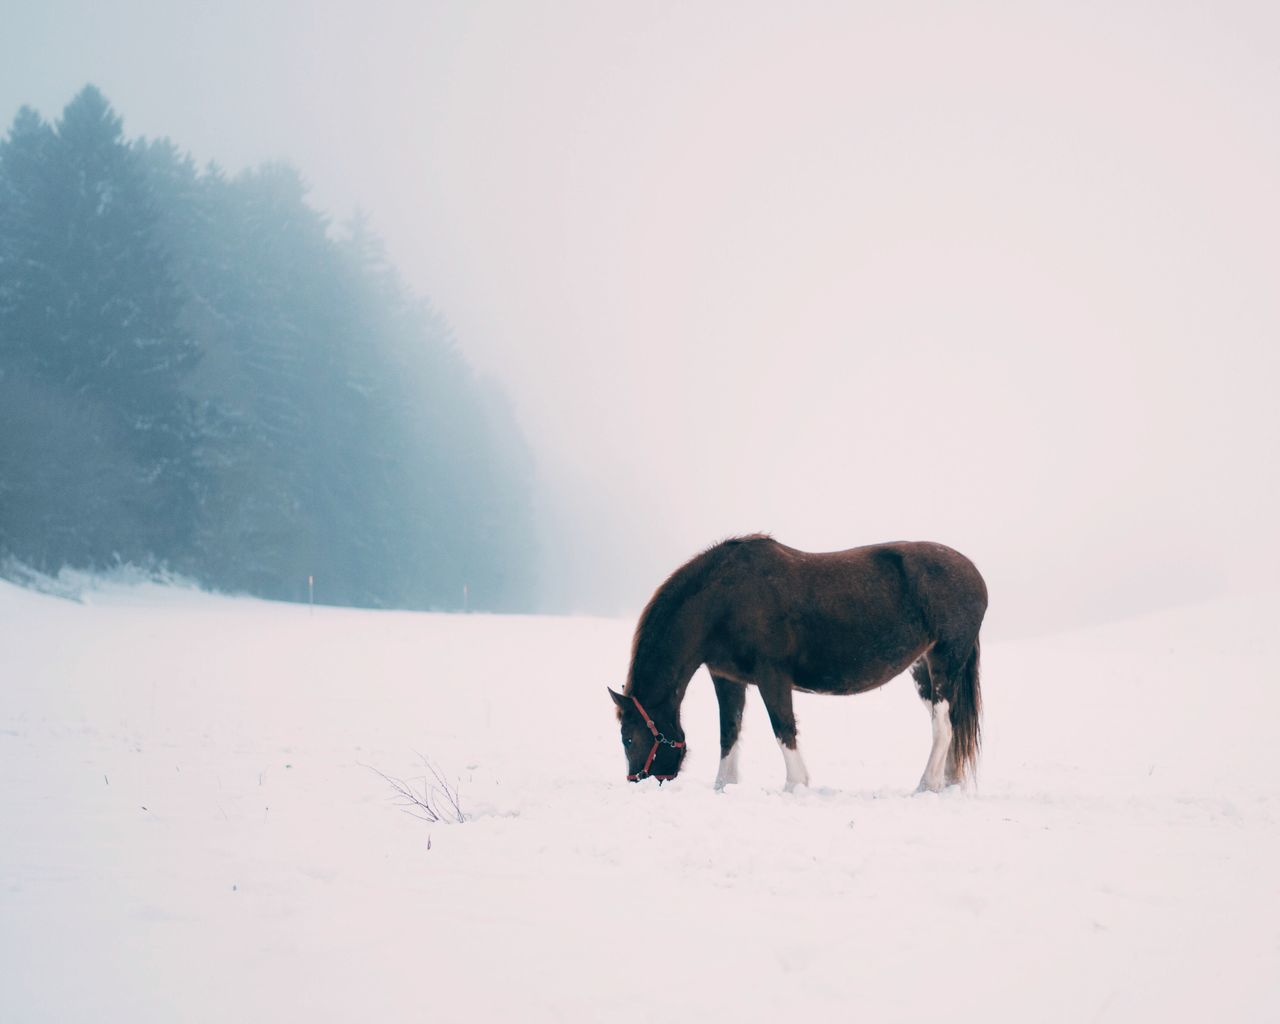 Beautiful stock photos of nature, winter, snow, weather, animal themes